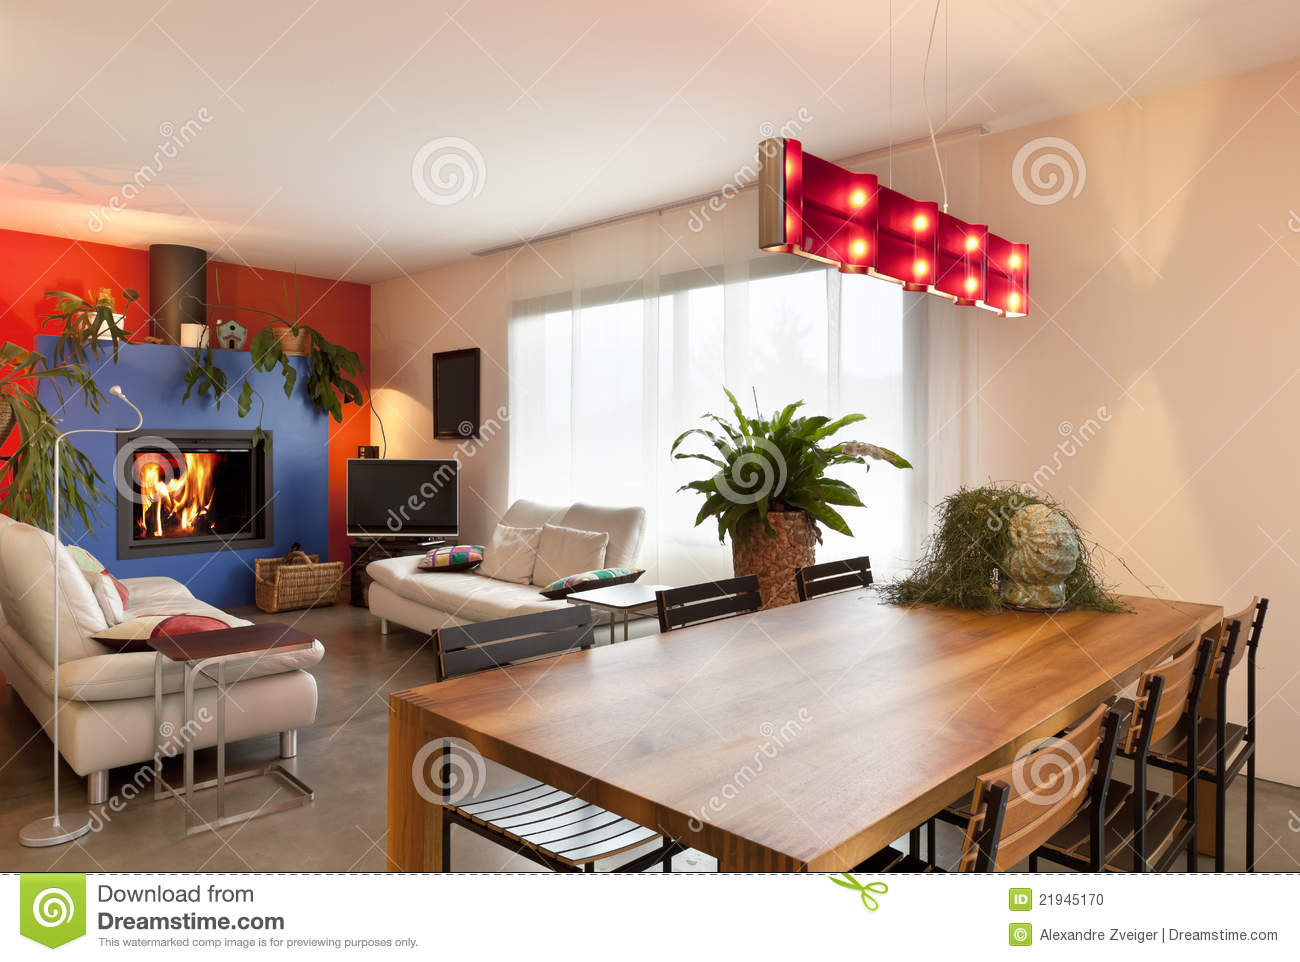 Charming Royalty Free Stock Photo. Download Wooden Dining Table, Living Room ... Design